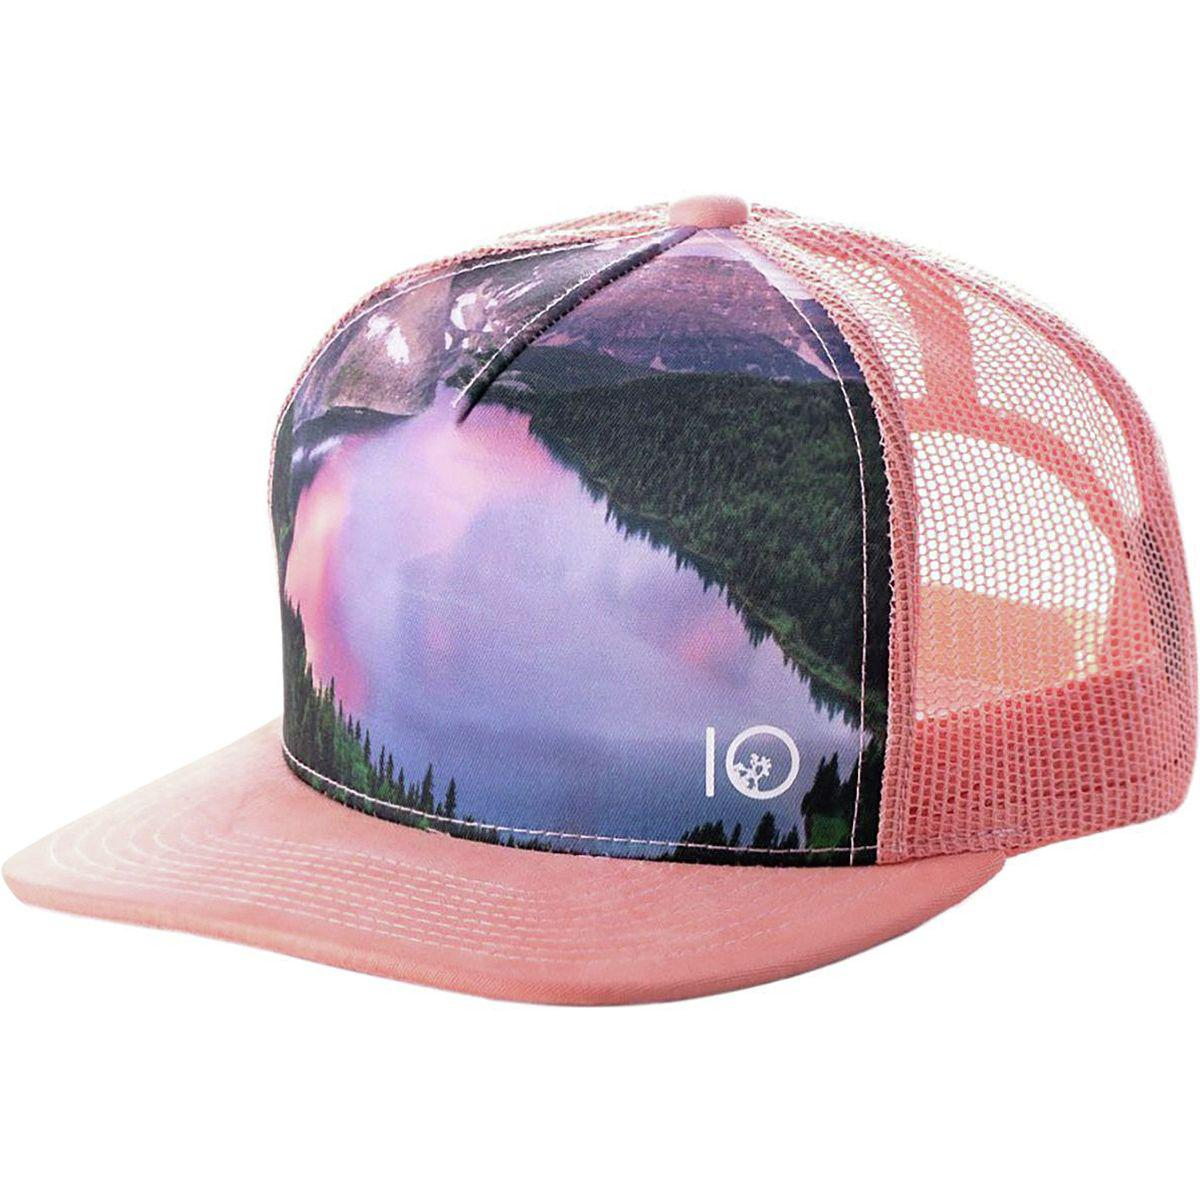 5edc8ca1cfbc4 Tentree Elevation Hat    tentree Just Restocked My Favorite Hat! Go ...